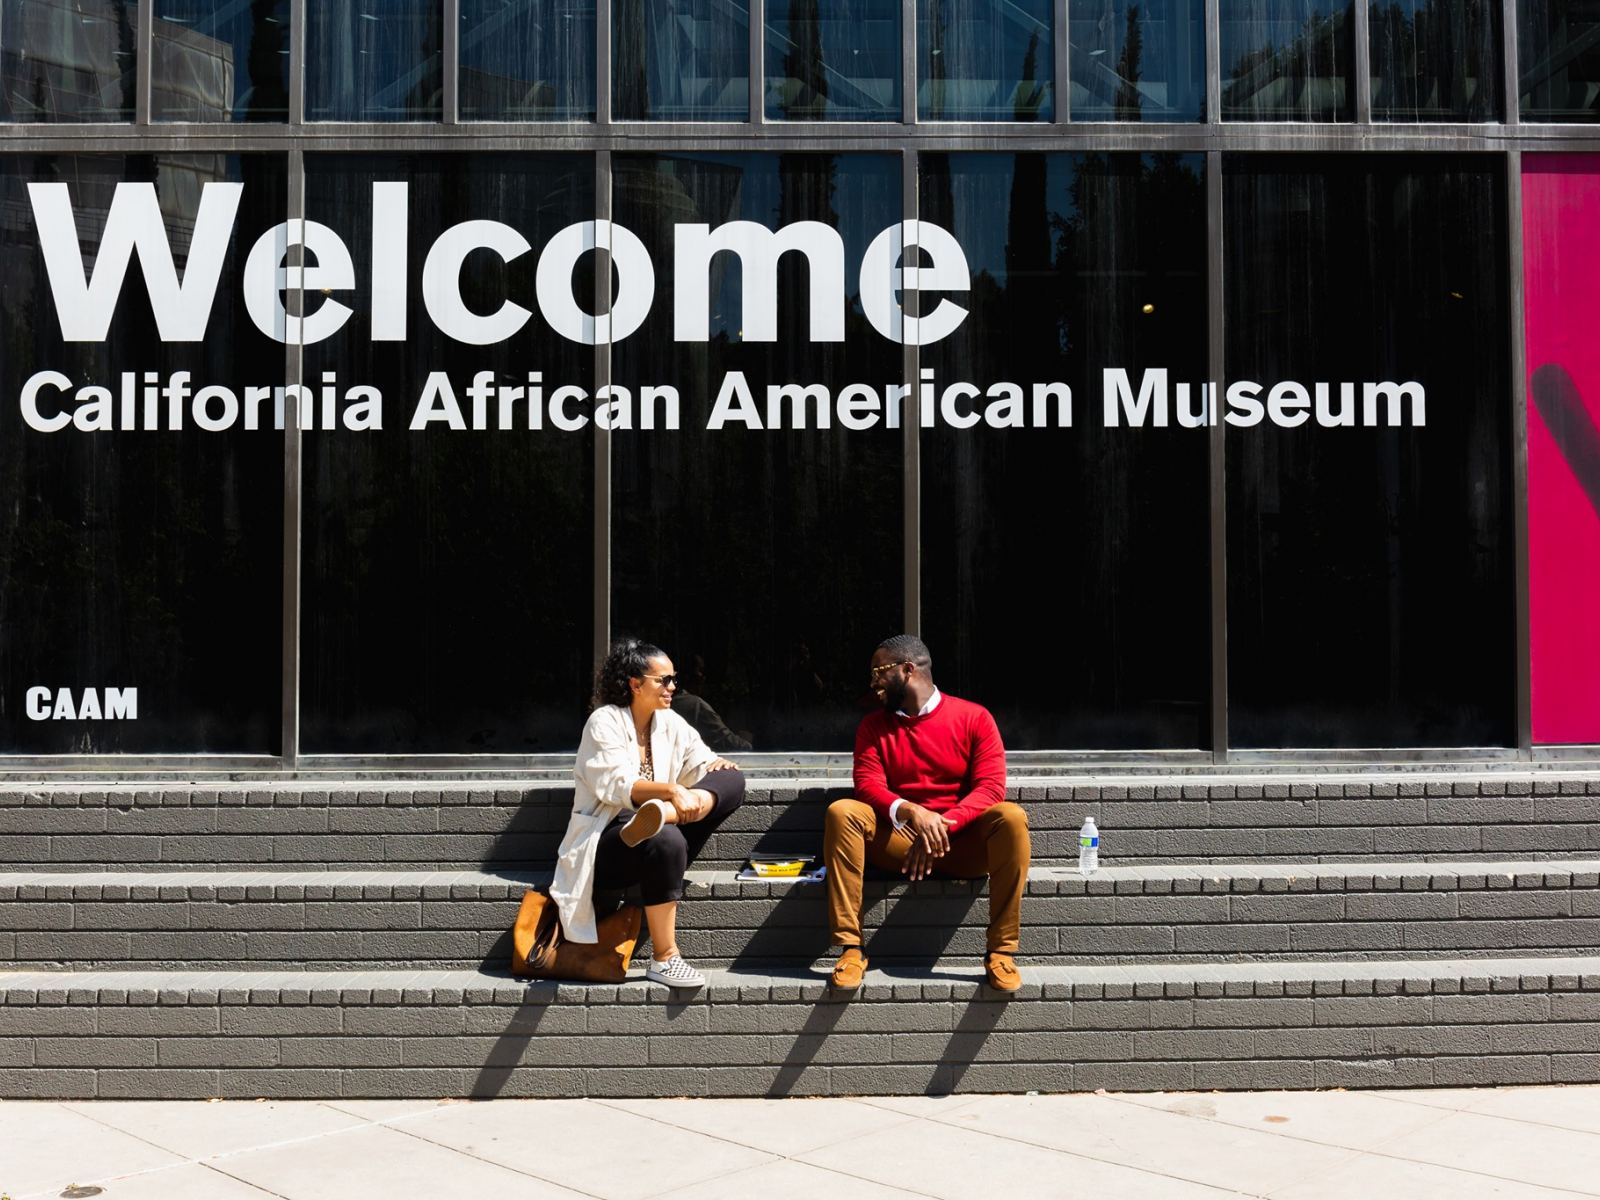 Entrance to the California African American Museum (CAAM) in Exposition Park